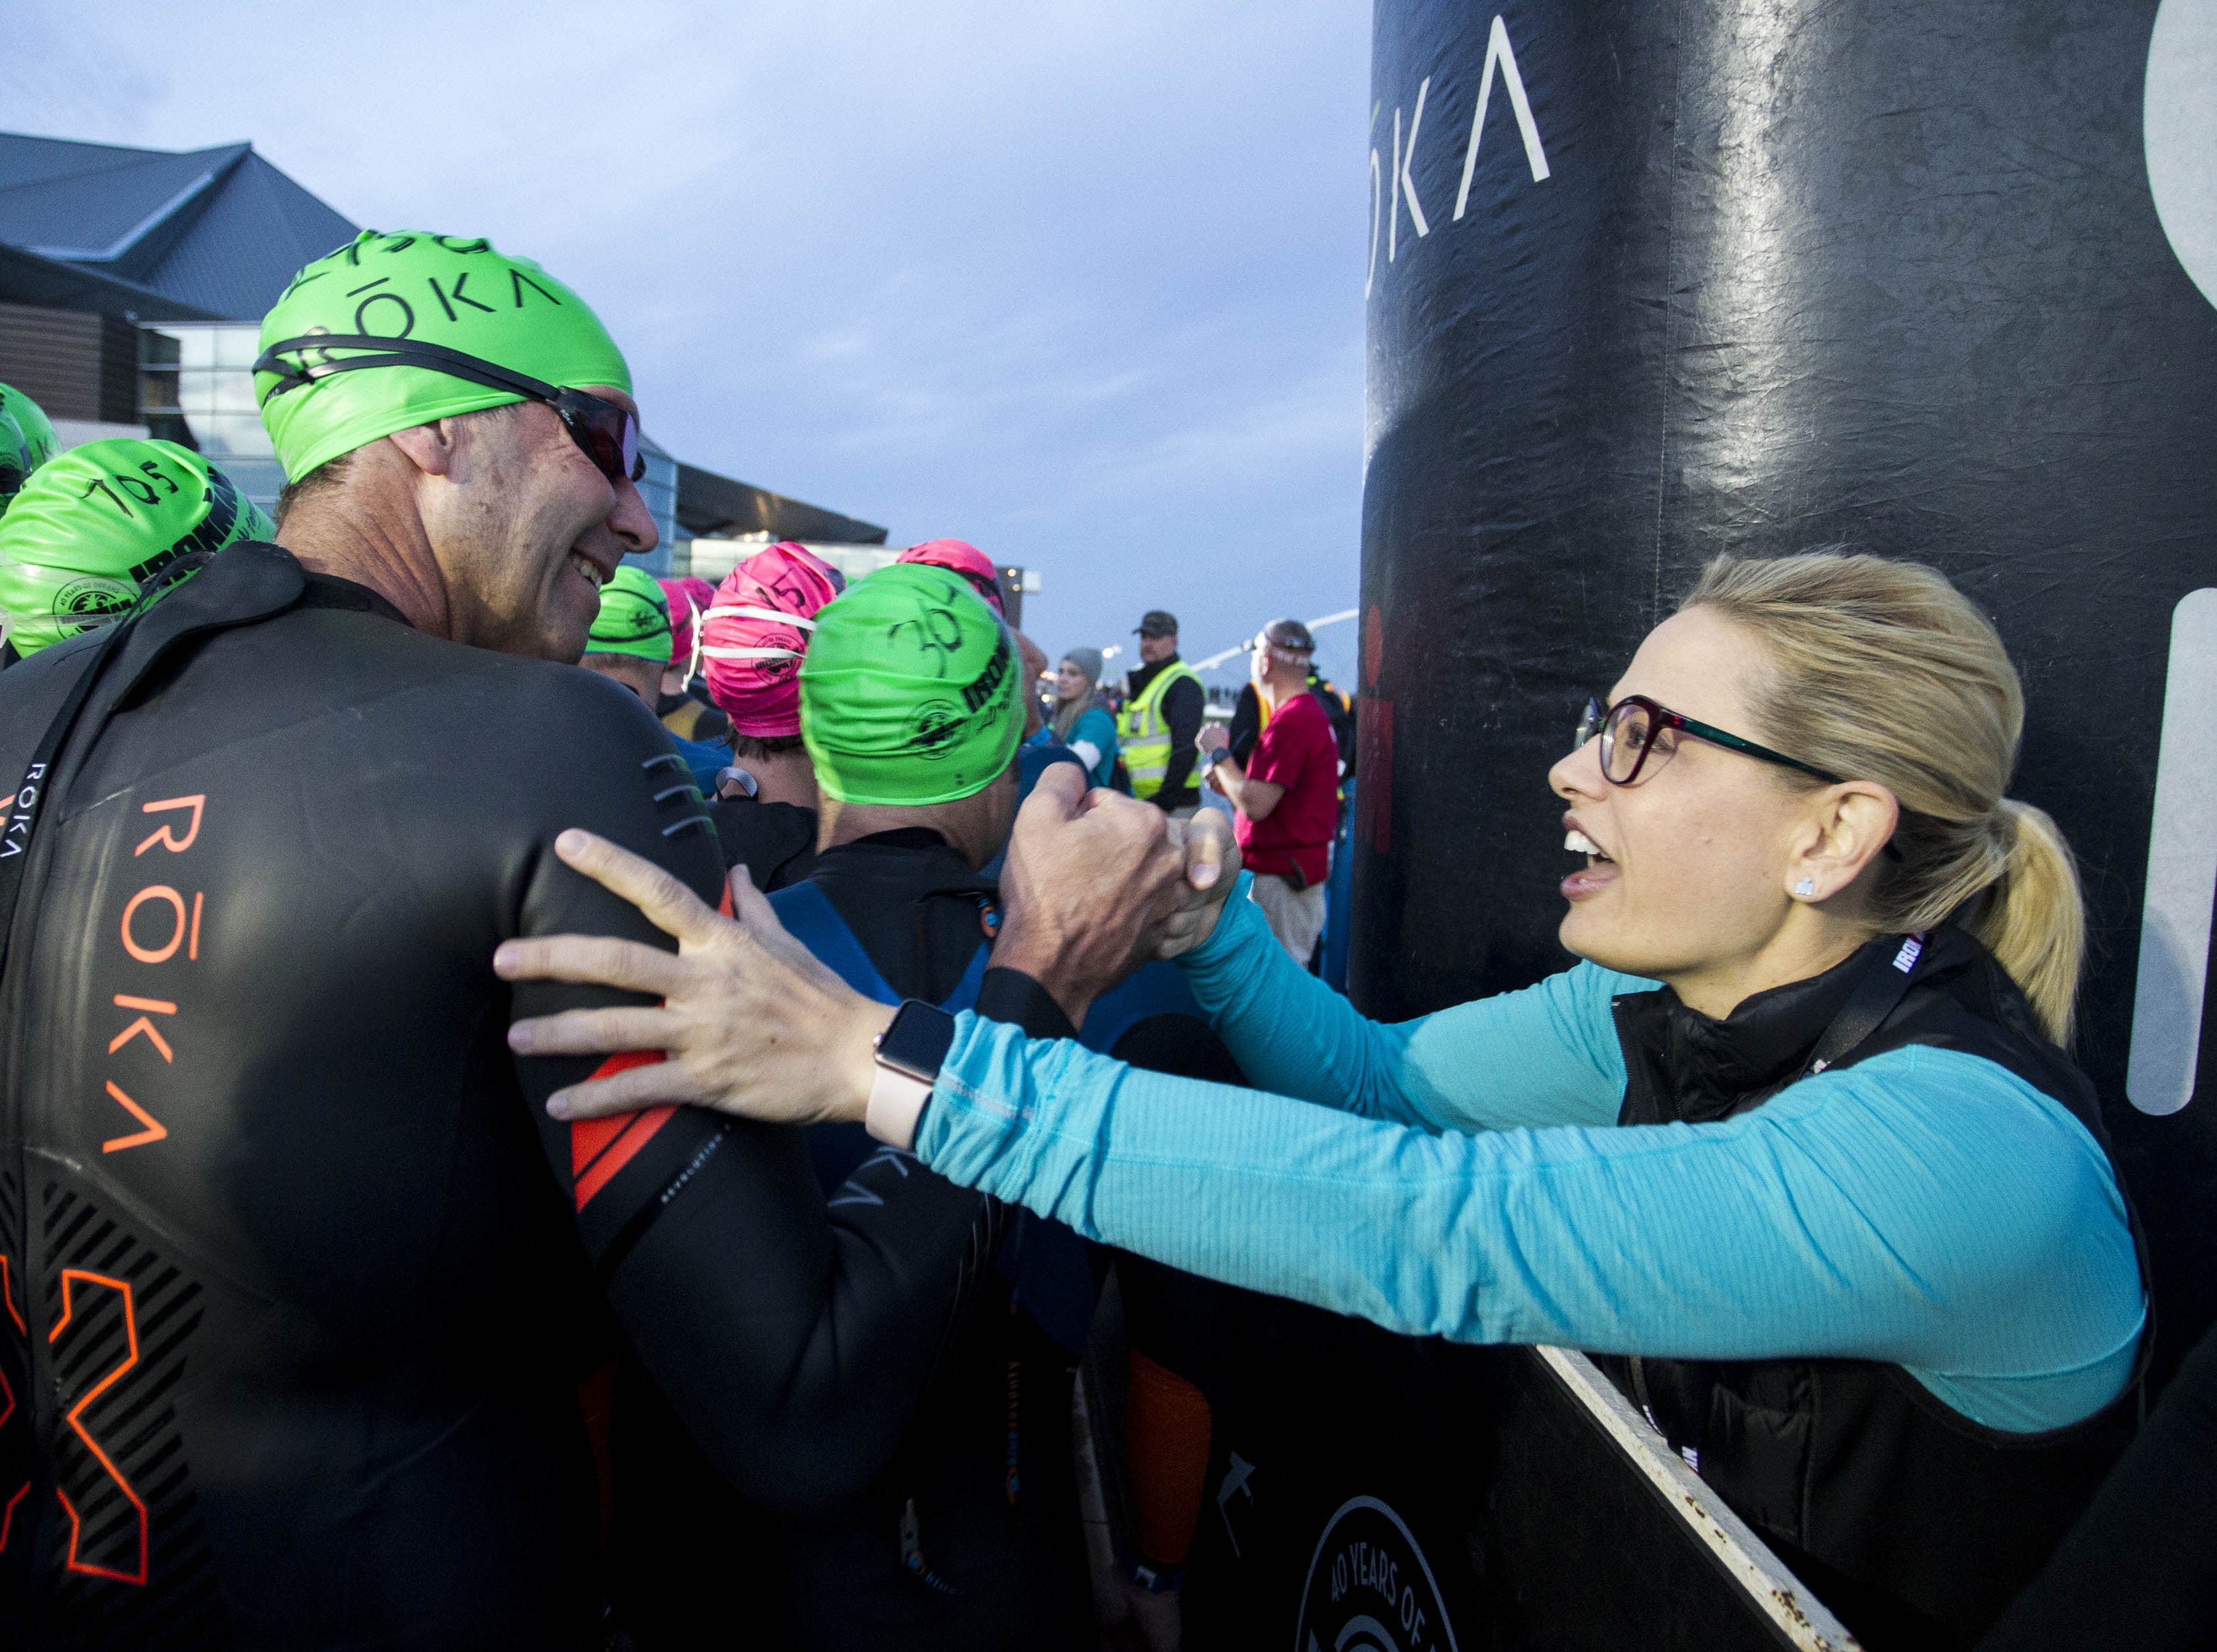 U.S. Sen.-elect Kyrsten Sinema encourage athletes before they start their swim during the Tempe Ironman at Tempe Town Lake Nov.18, 2018.